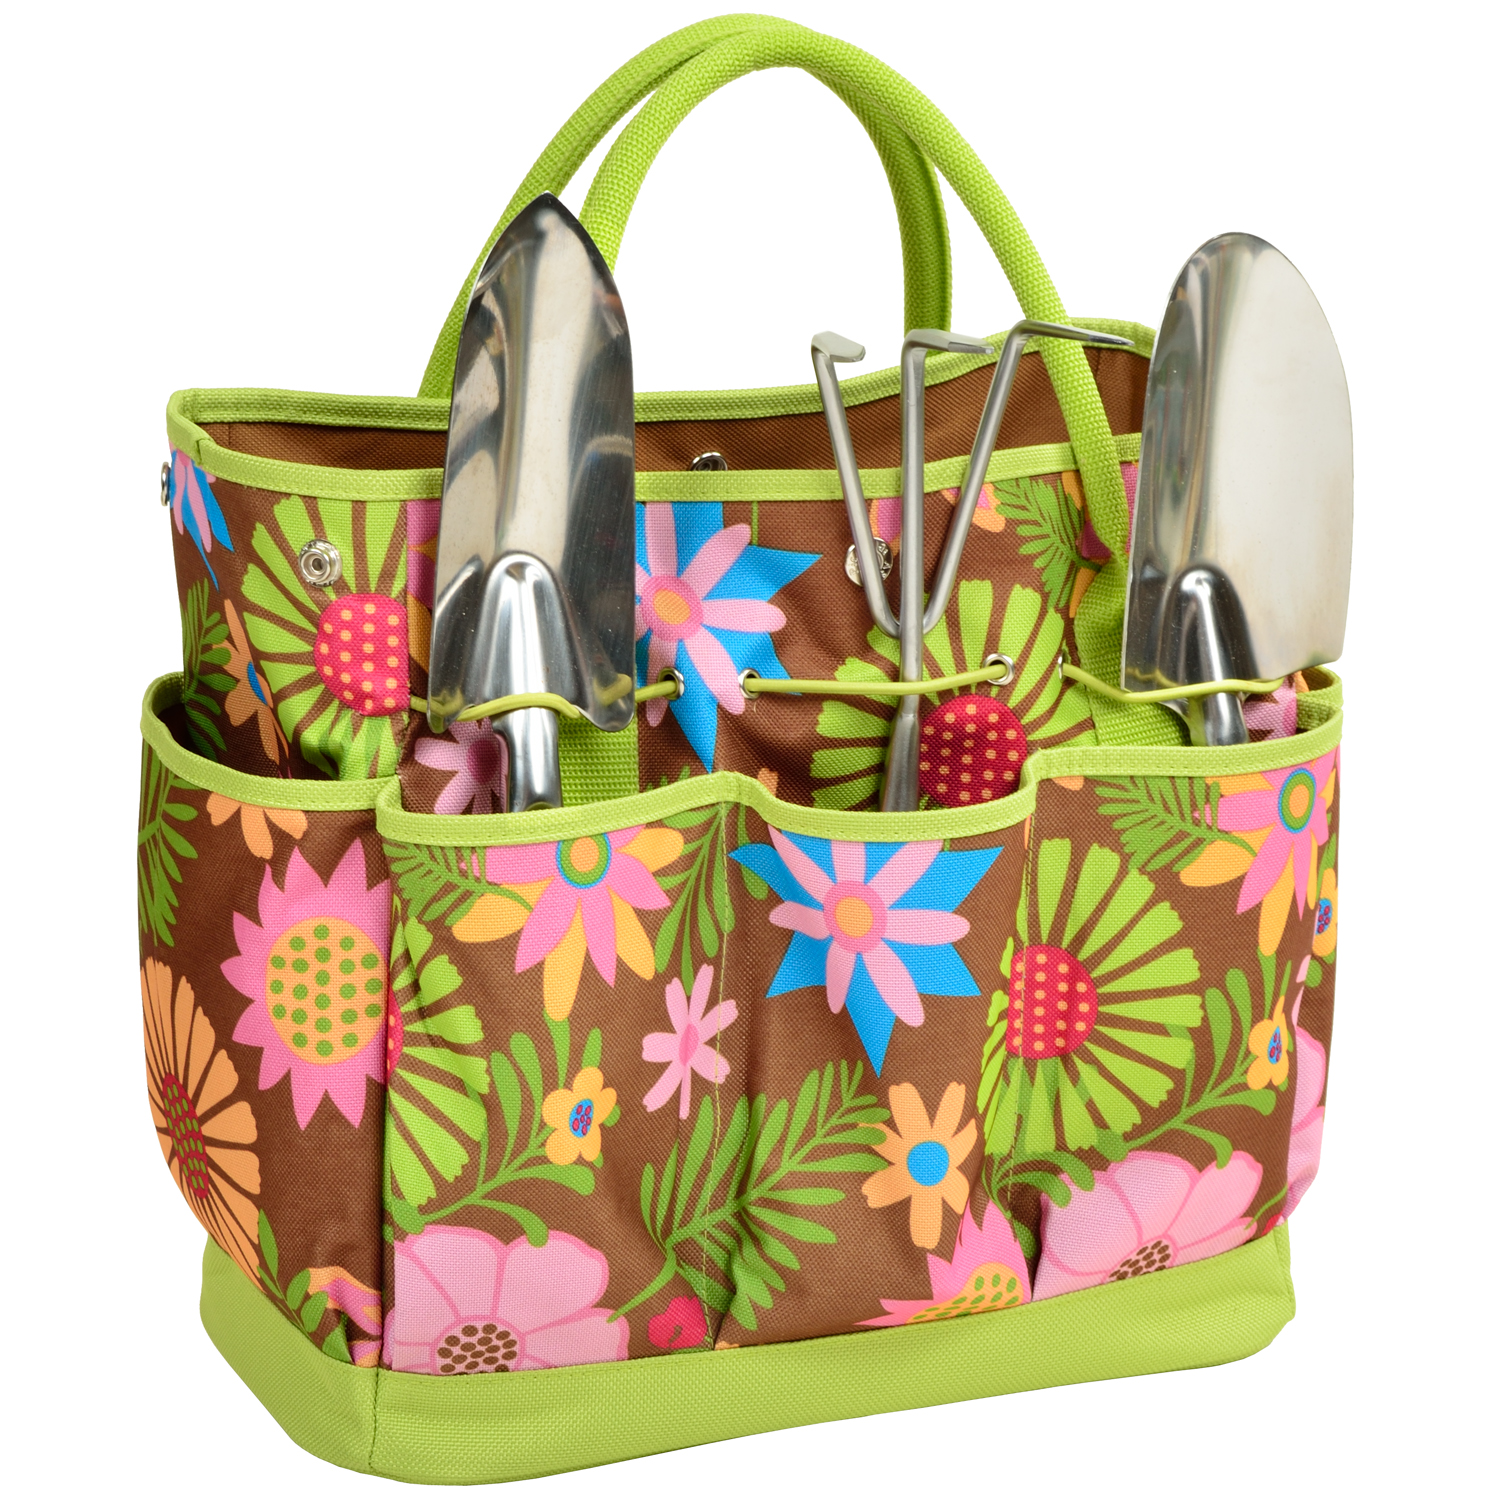 Picnic at Ascot Floral Gardening Tote with Tools (341-F)